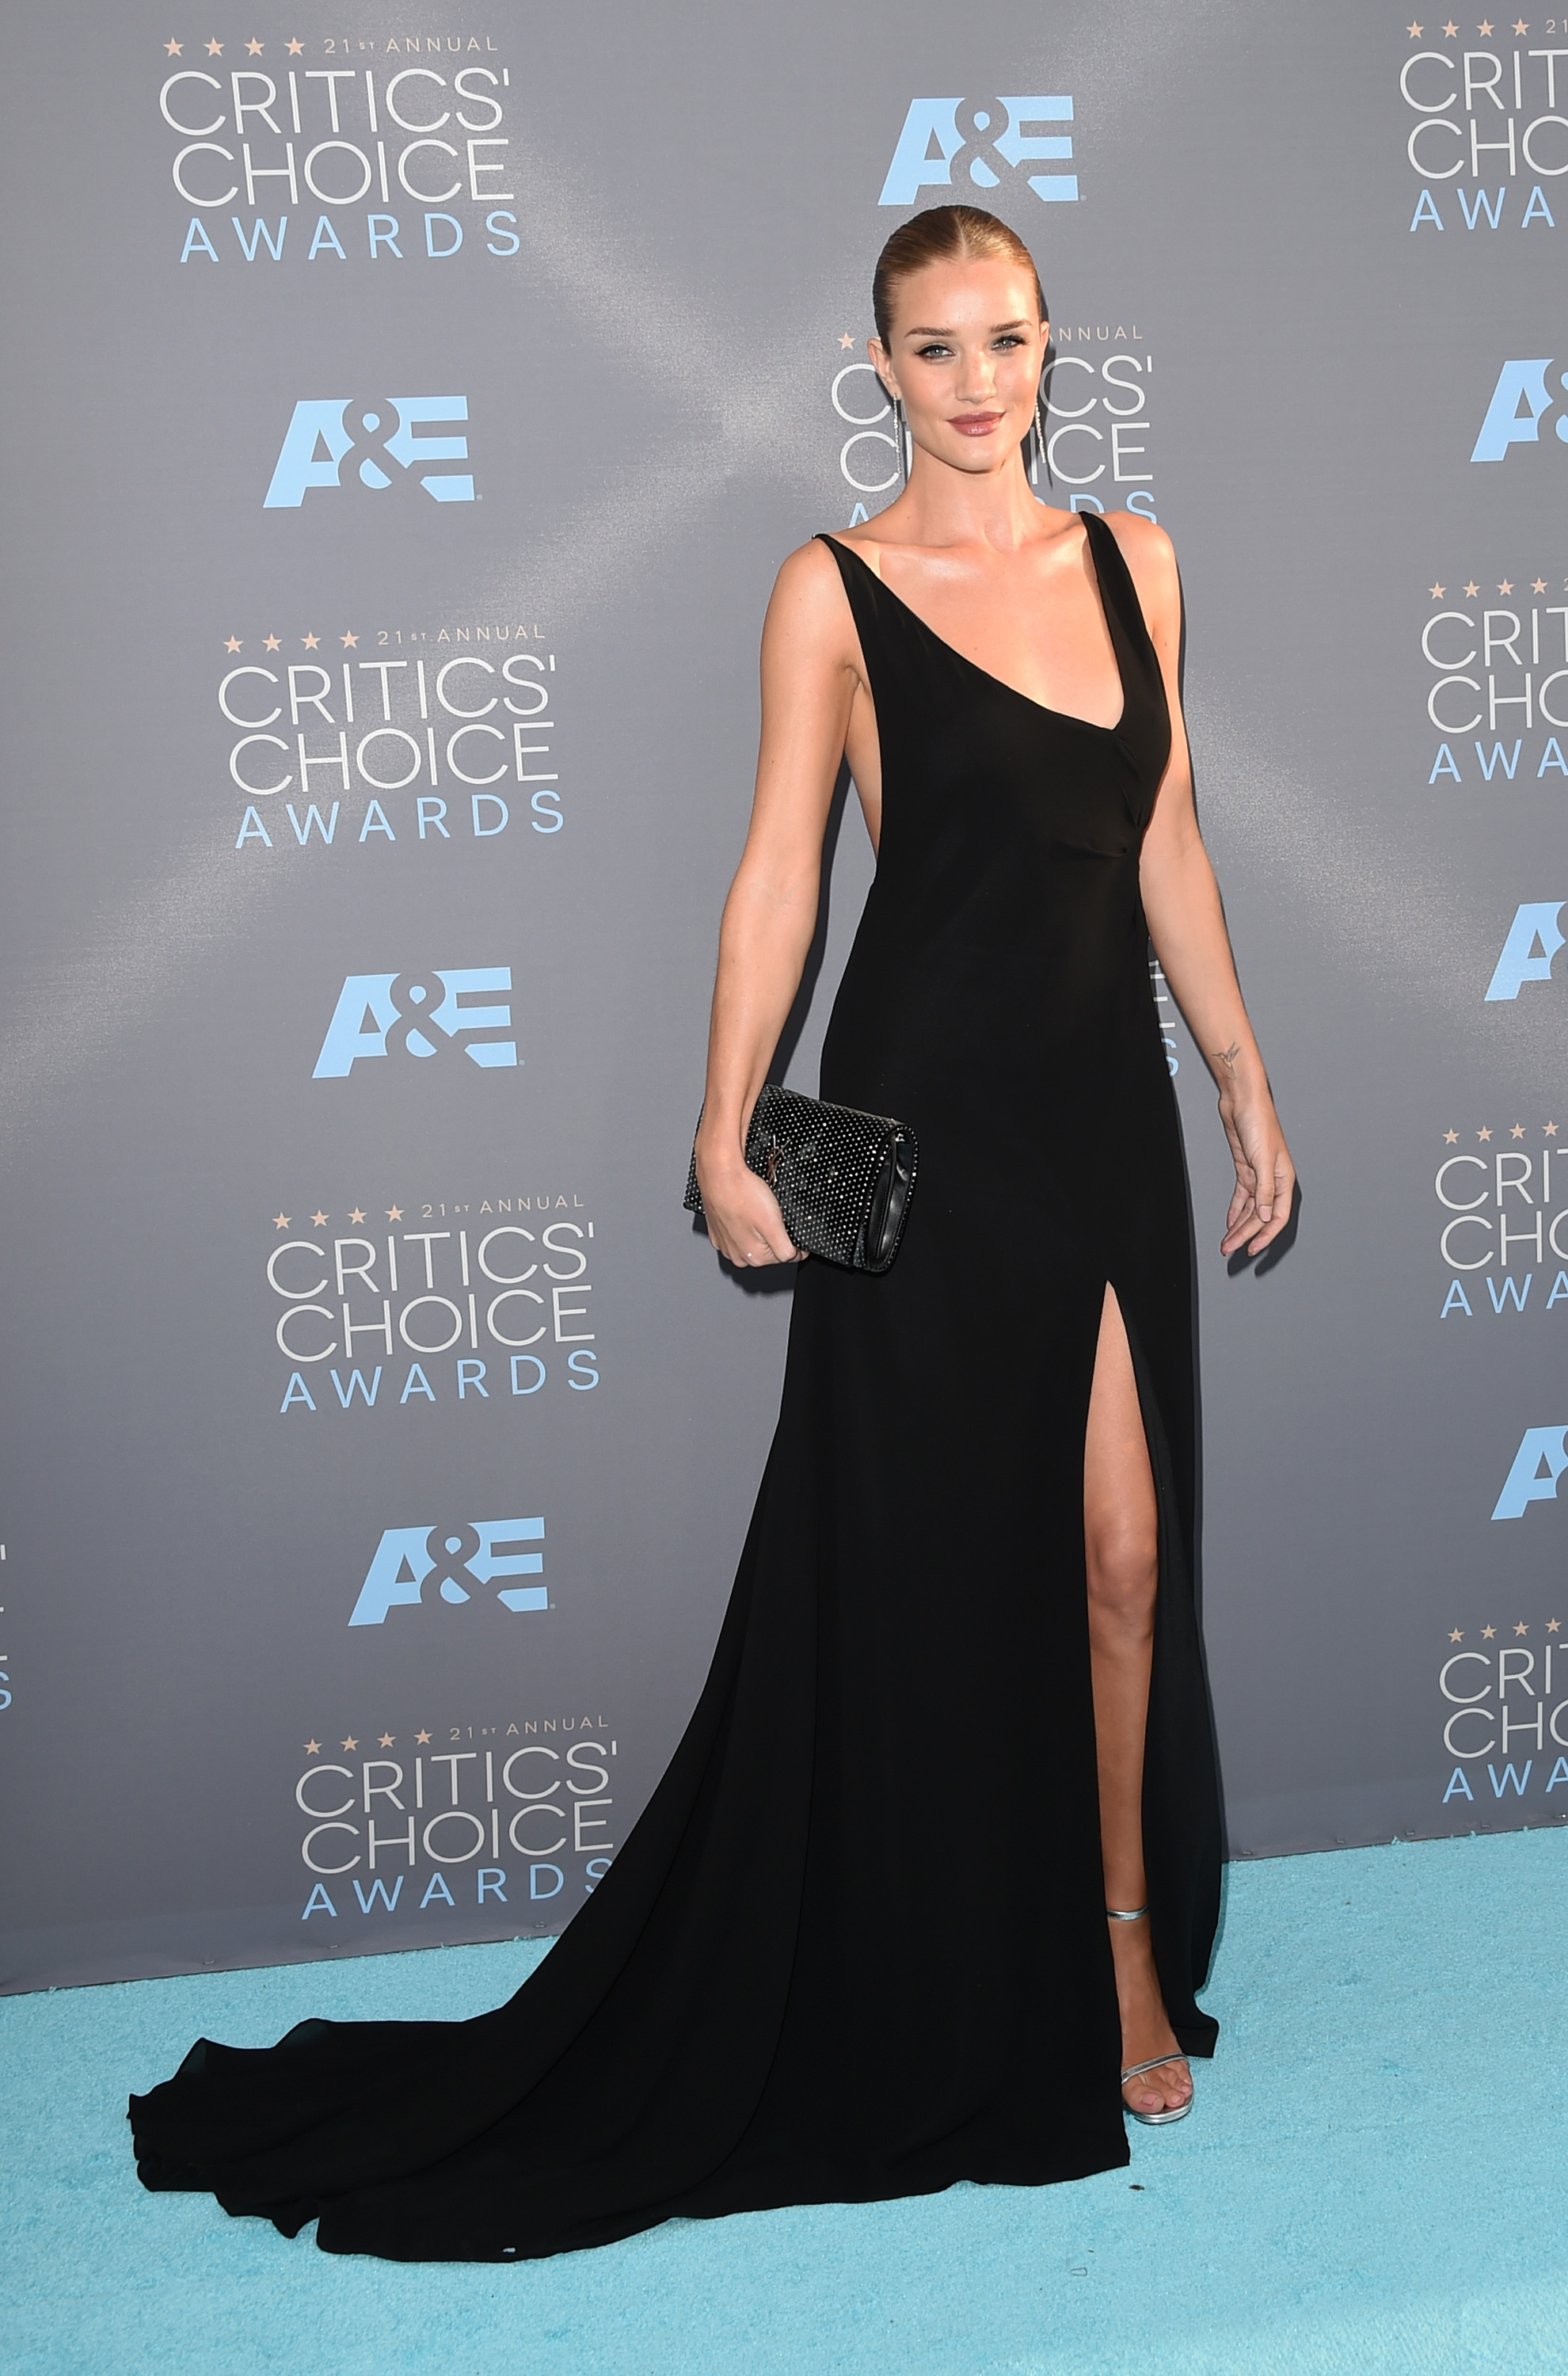 Rosie Huntington-Whiteley black Saint Laurent gown 2016 Critics' Choice Awards